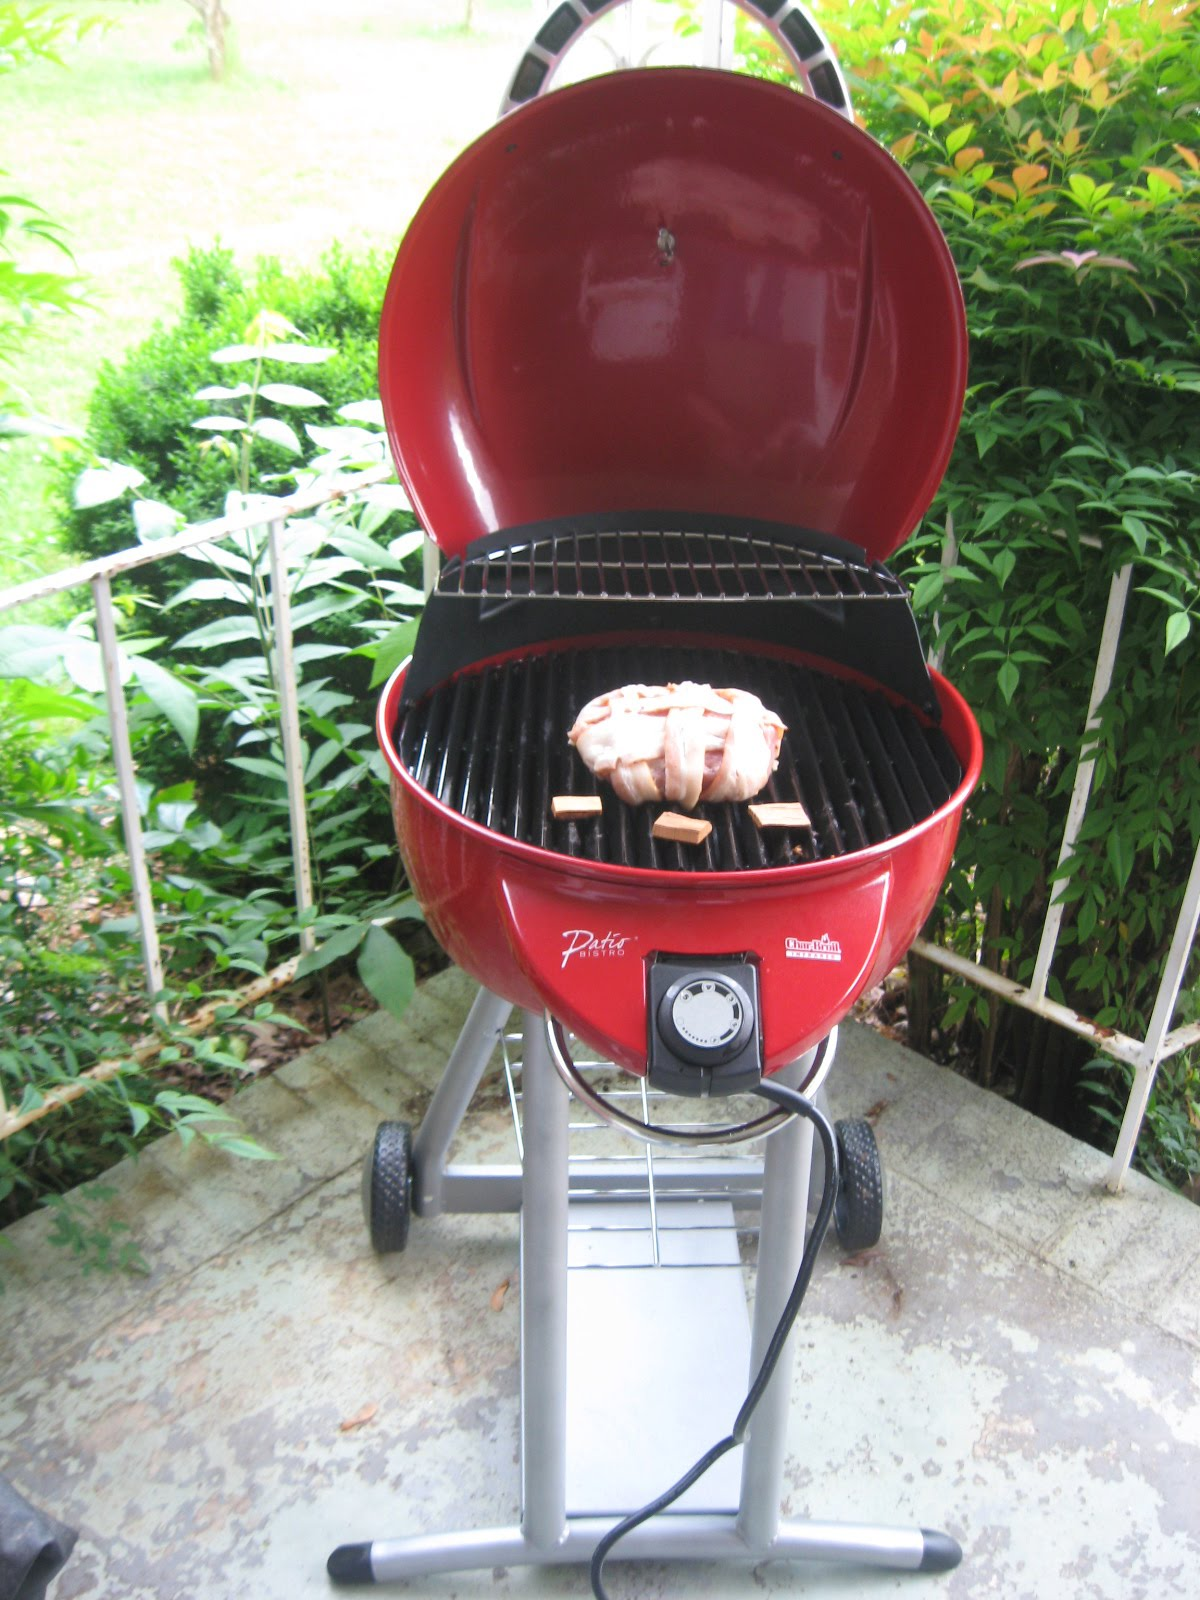 Lovely Amazoncom CharBroil TRUInfrared Patio Bistro Electric Grill. Barbecue  Master Bacon Weave Pork Loin On Electric Patio Bistro By